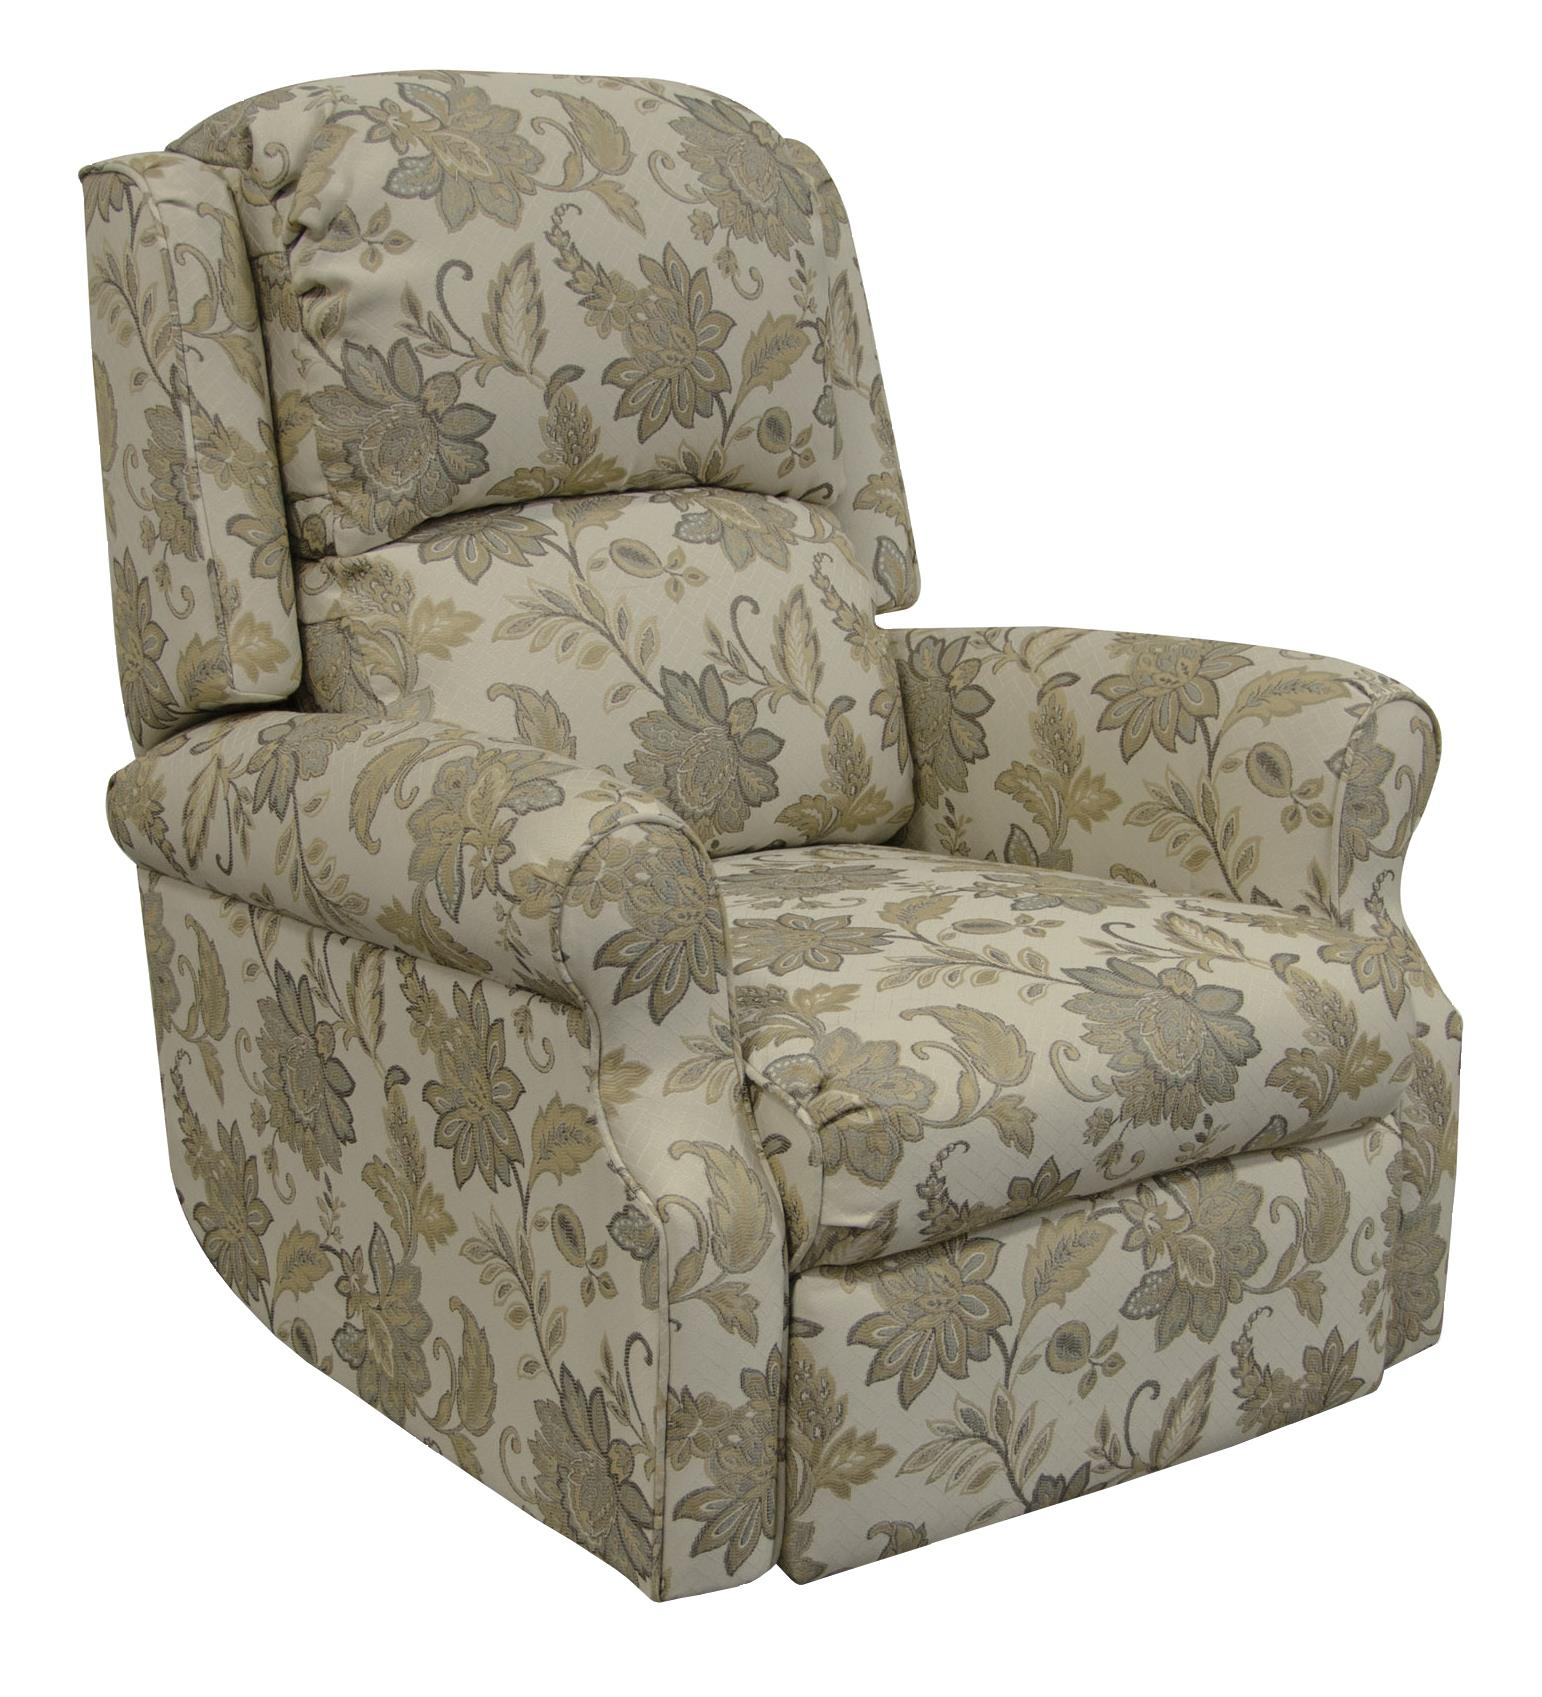 Marybeth Lift Chair by England at Crowley Furniture & Mattress